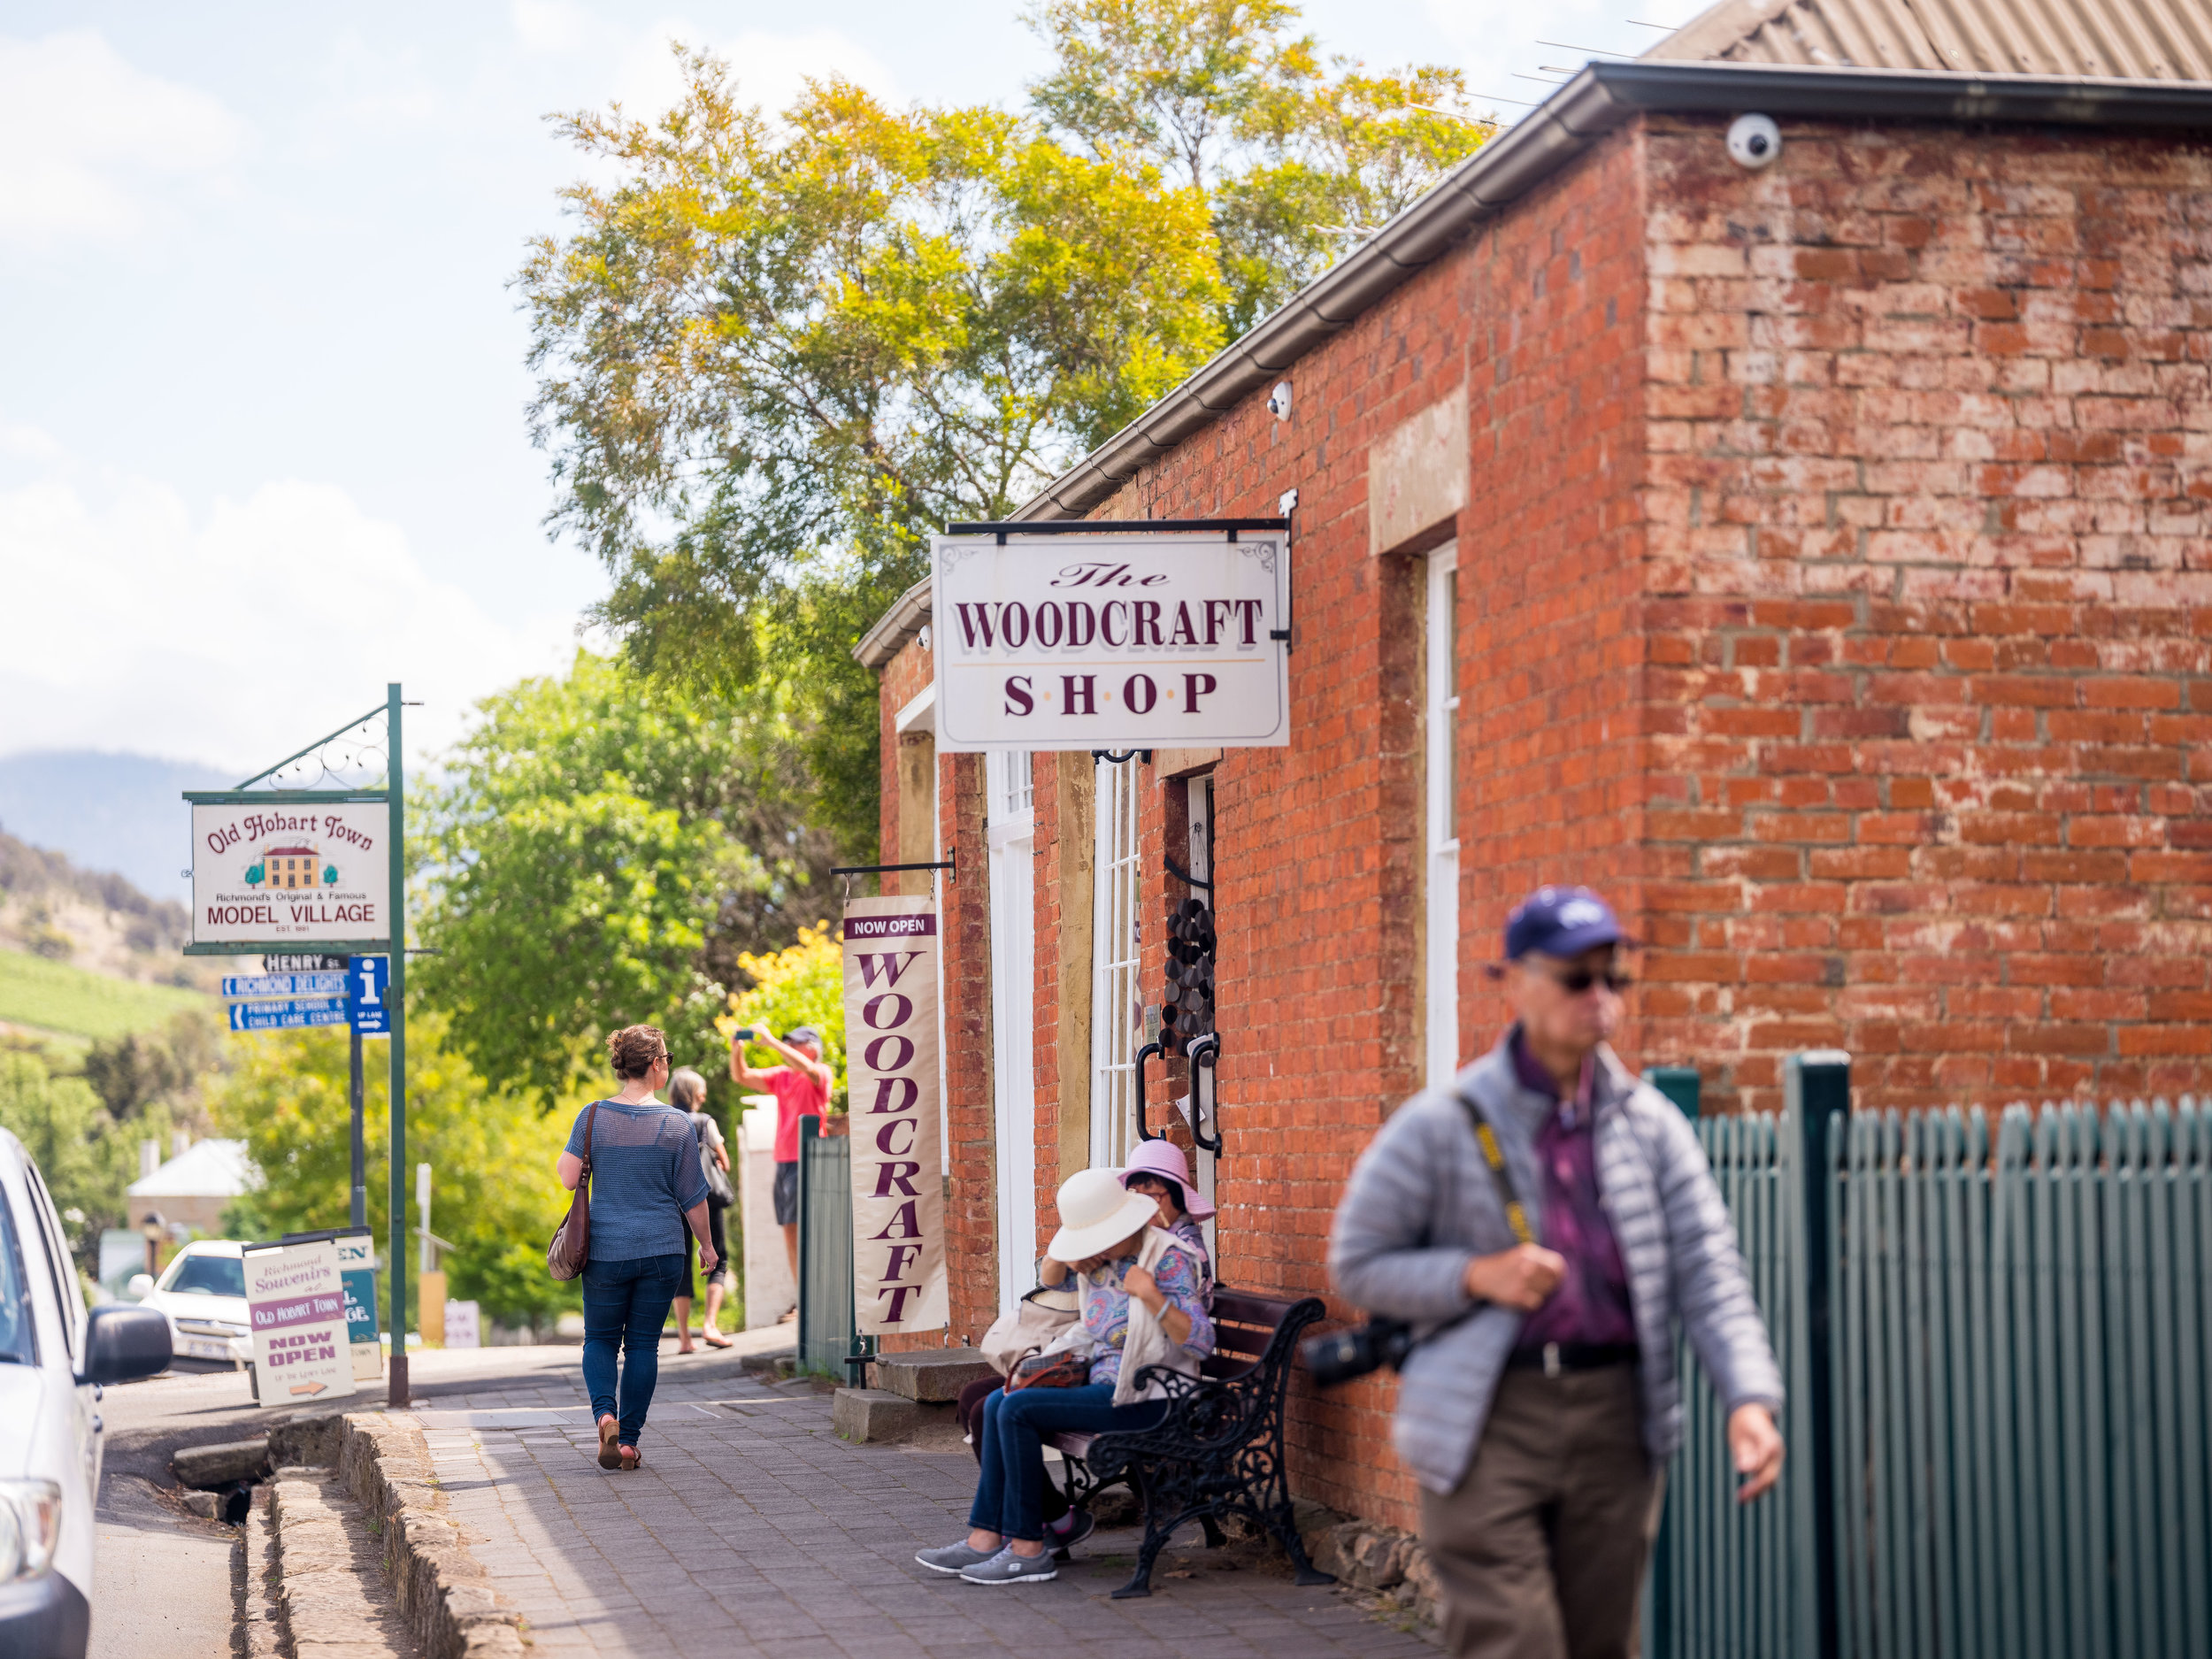 There are plenty of art, craft & bric-brac shops at Richmond Village, all within a short walk of the town center.